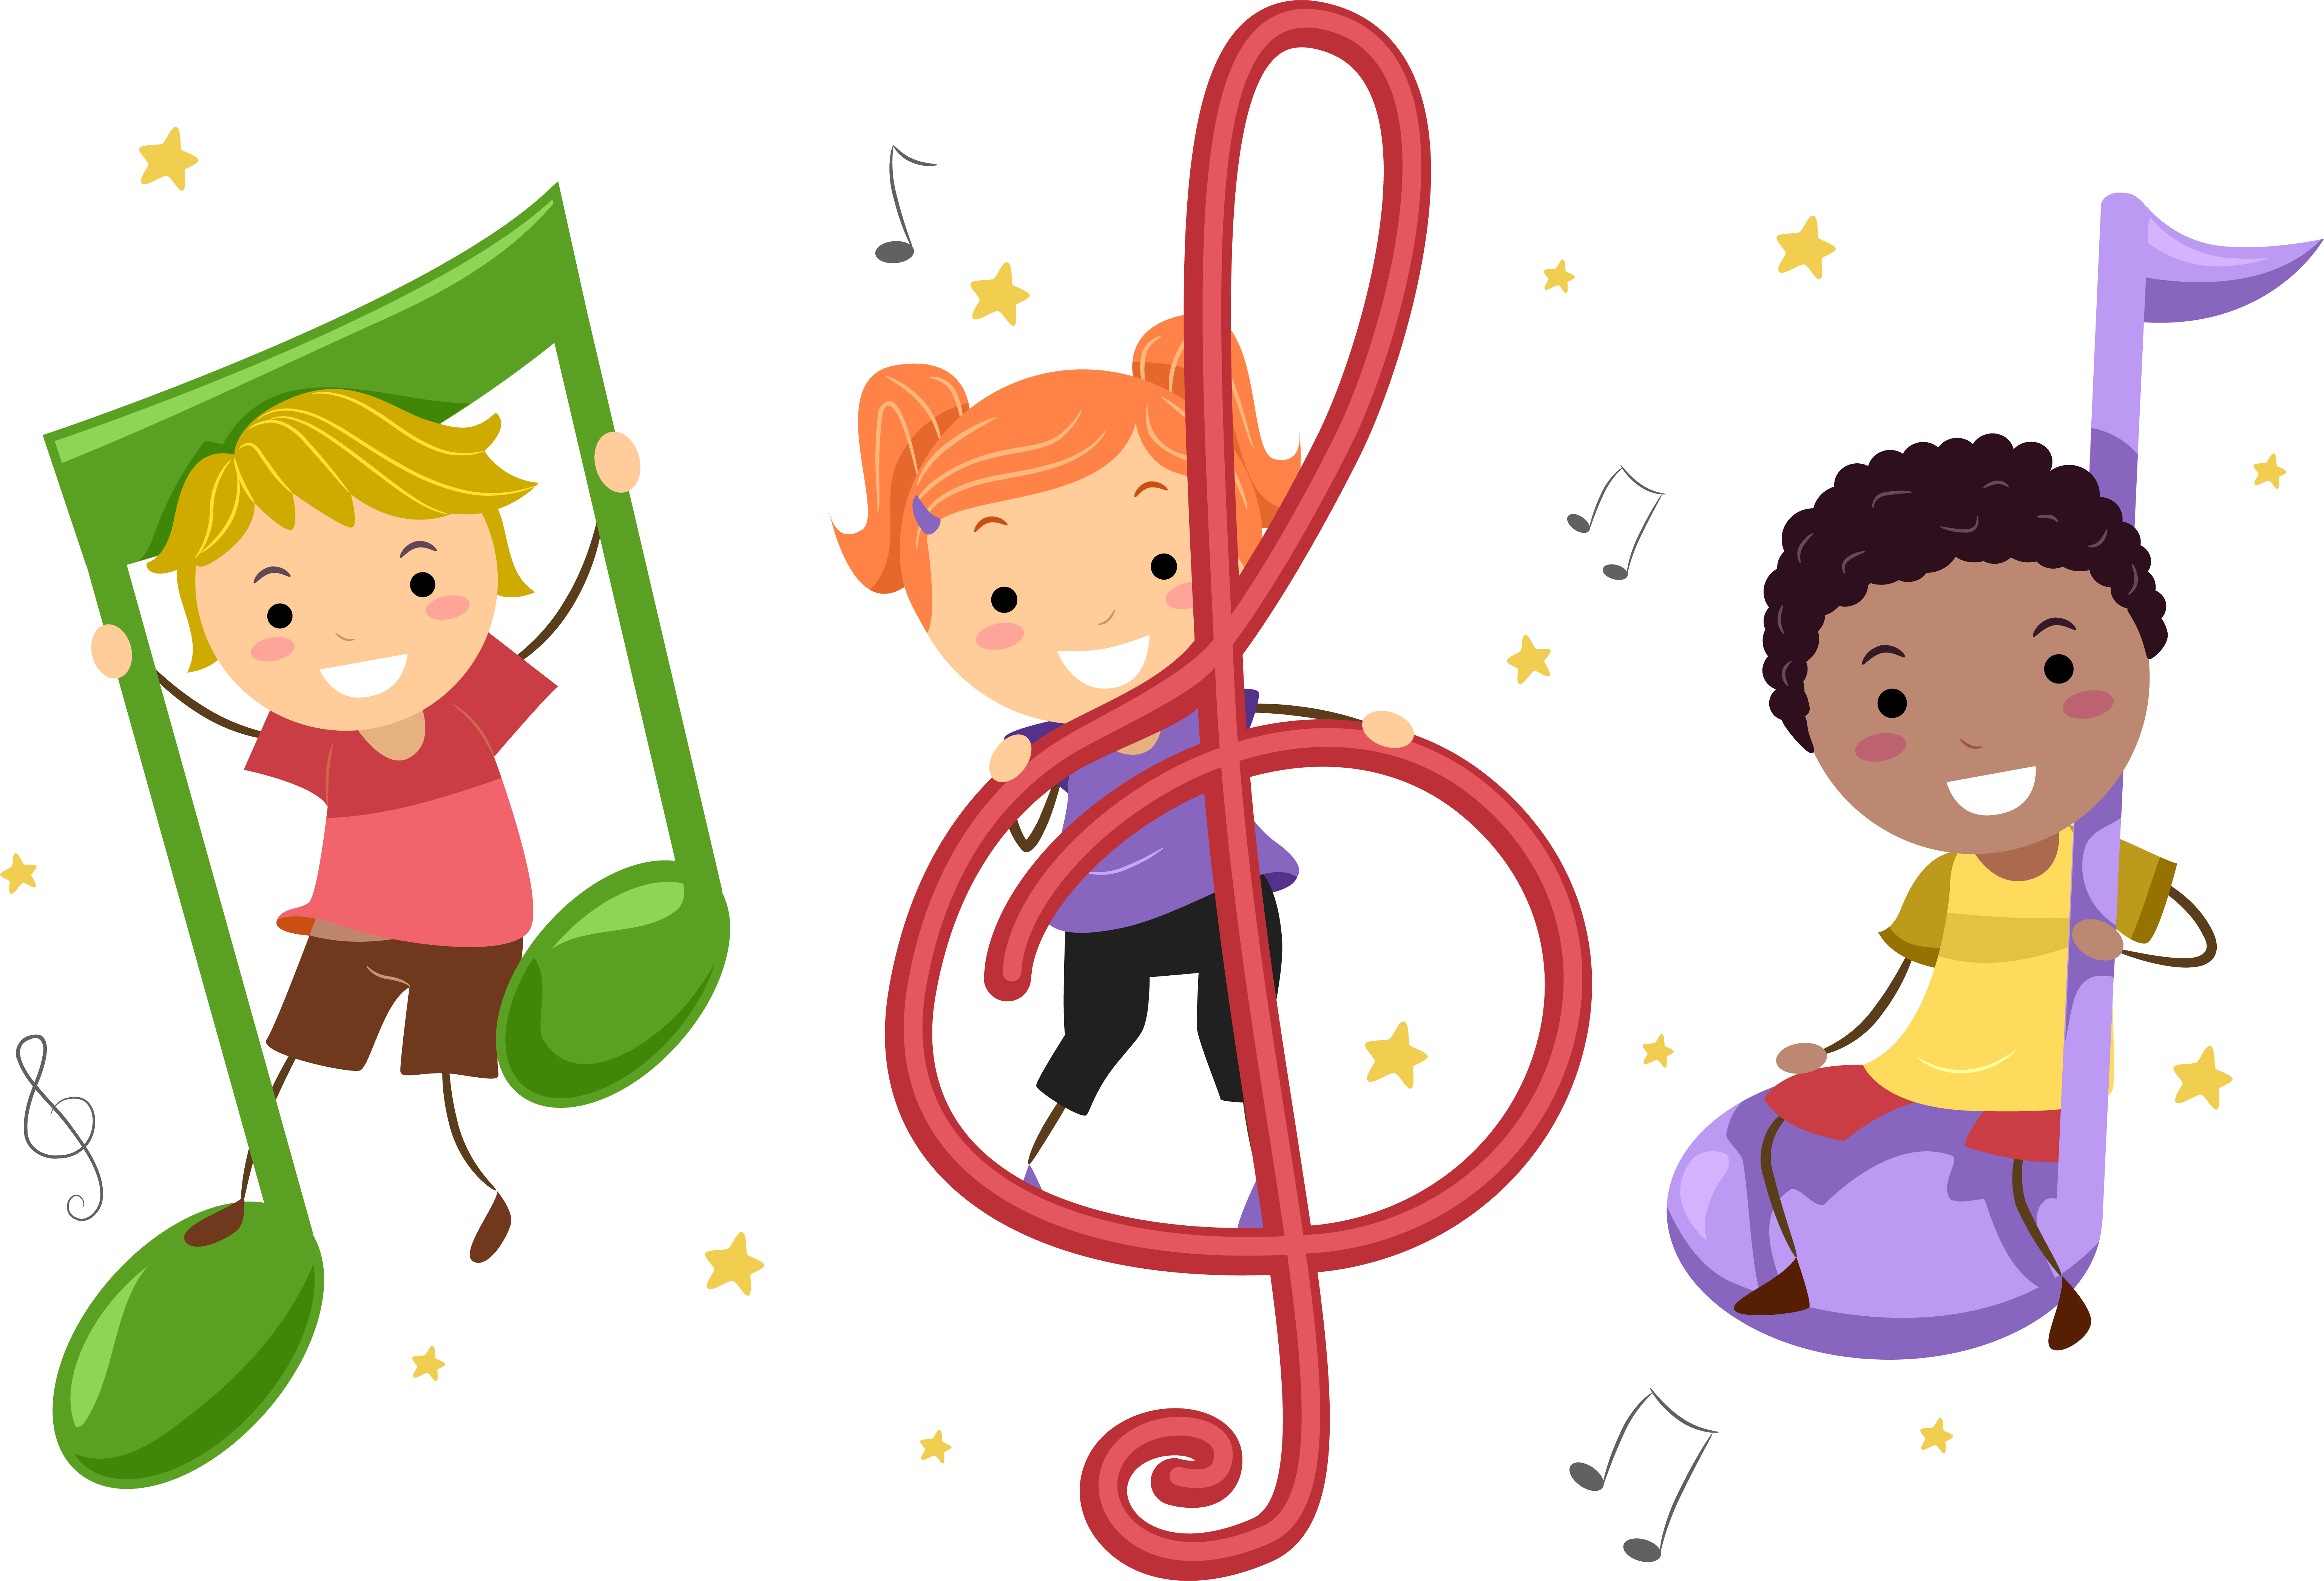 Children Singing Clipart - Clipartion.com